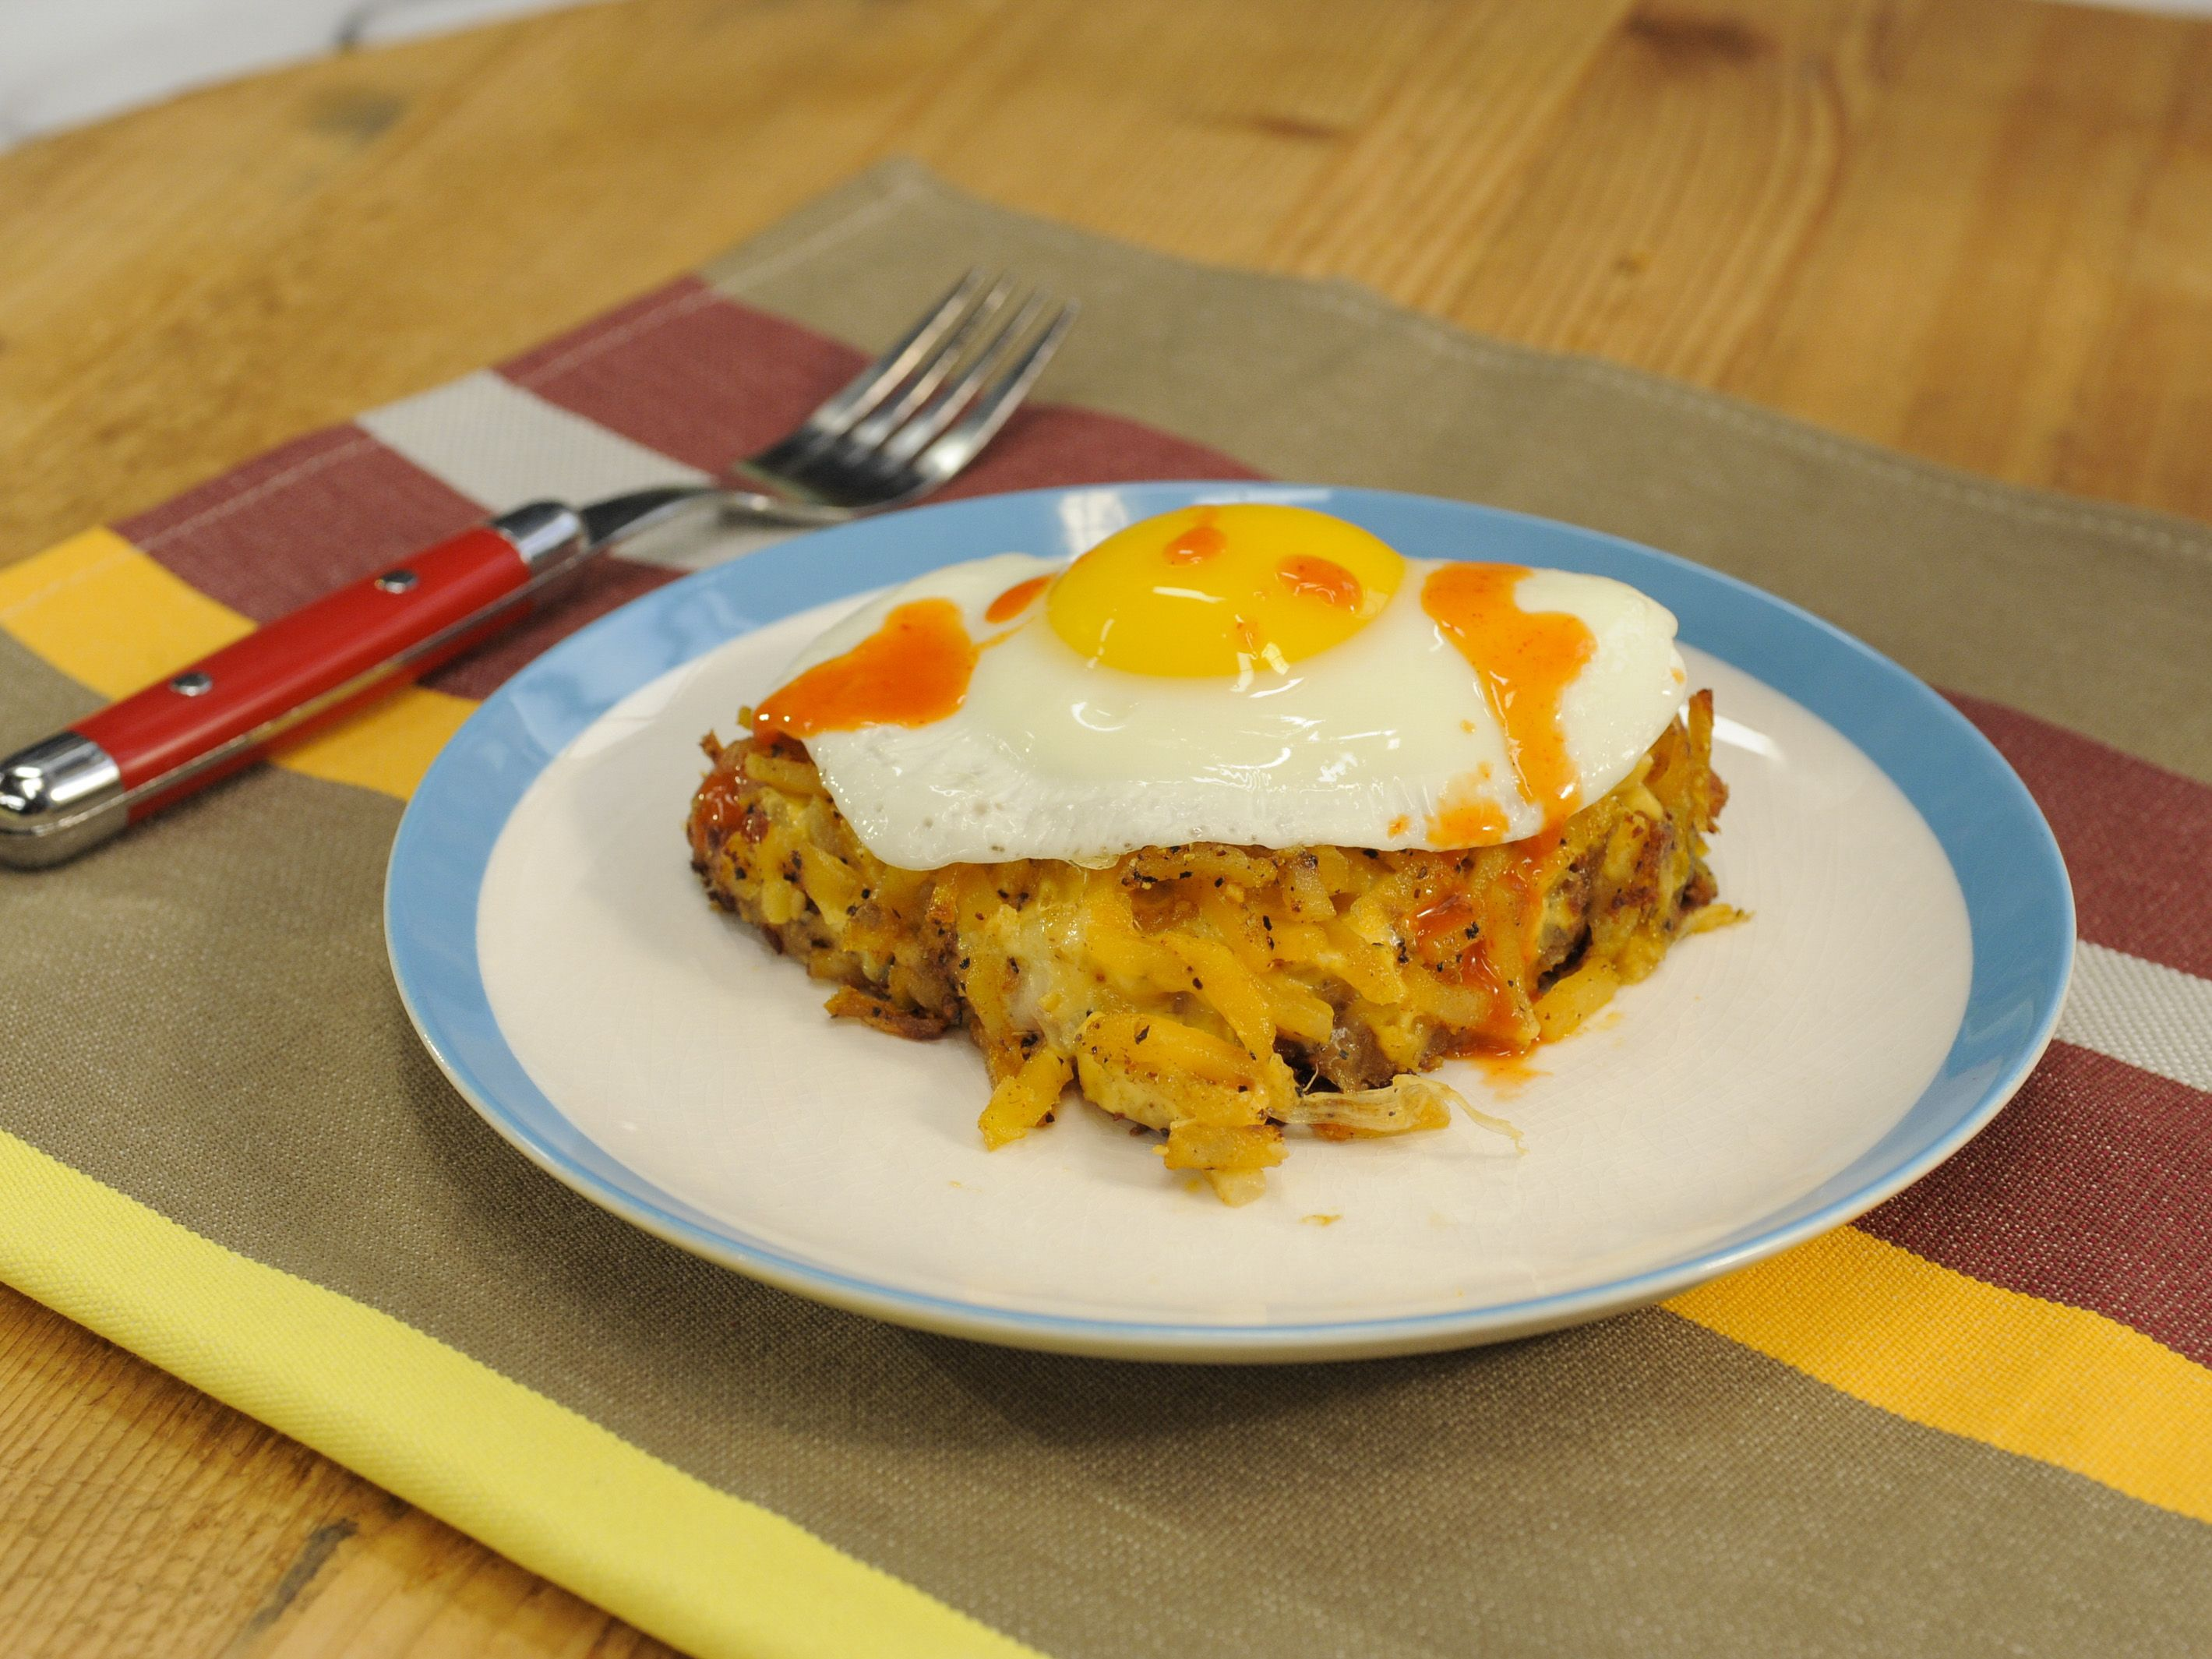 Sunnys easy breakfast cottage pie recipe sunny anderson sunnys easy breakfast cottage pie forumfinder Image collections